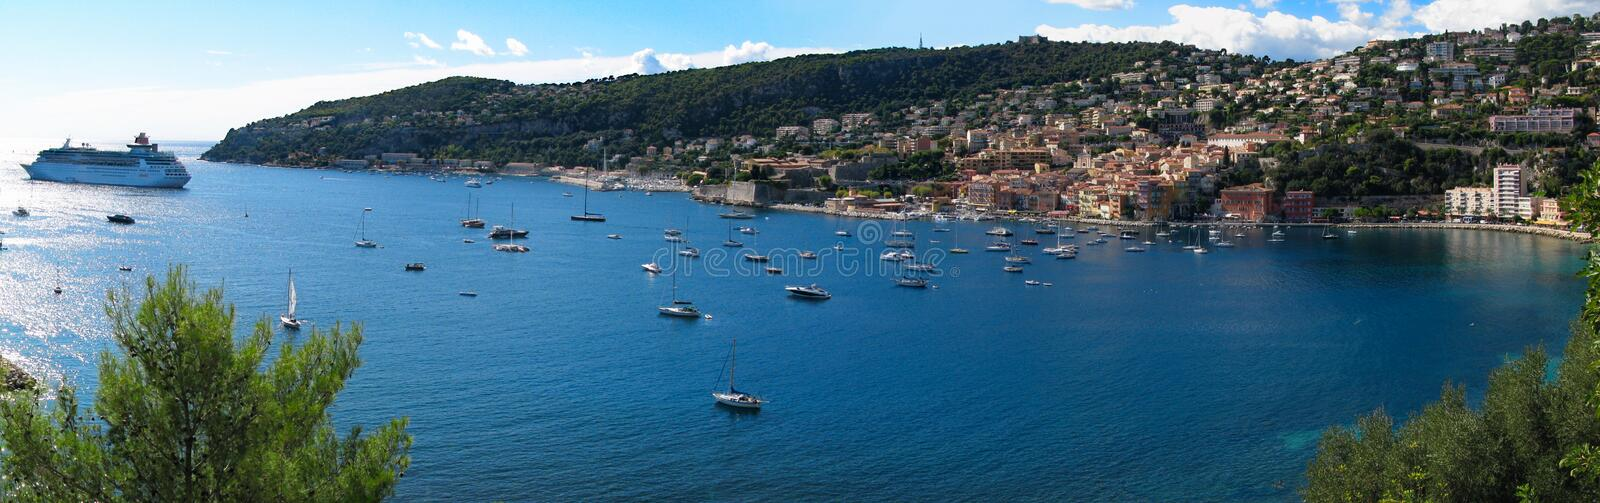 Panoramic view of Villefranche-sur-Mer in the French Riviera, France, and the Mediterranean sea stock images